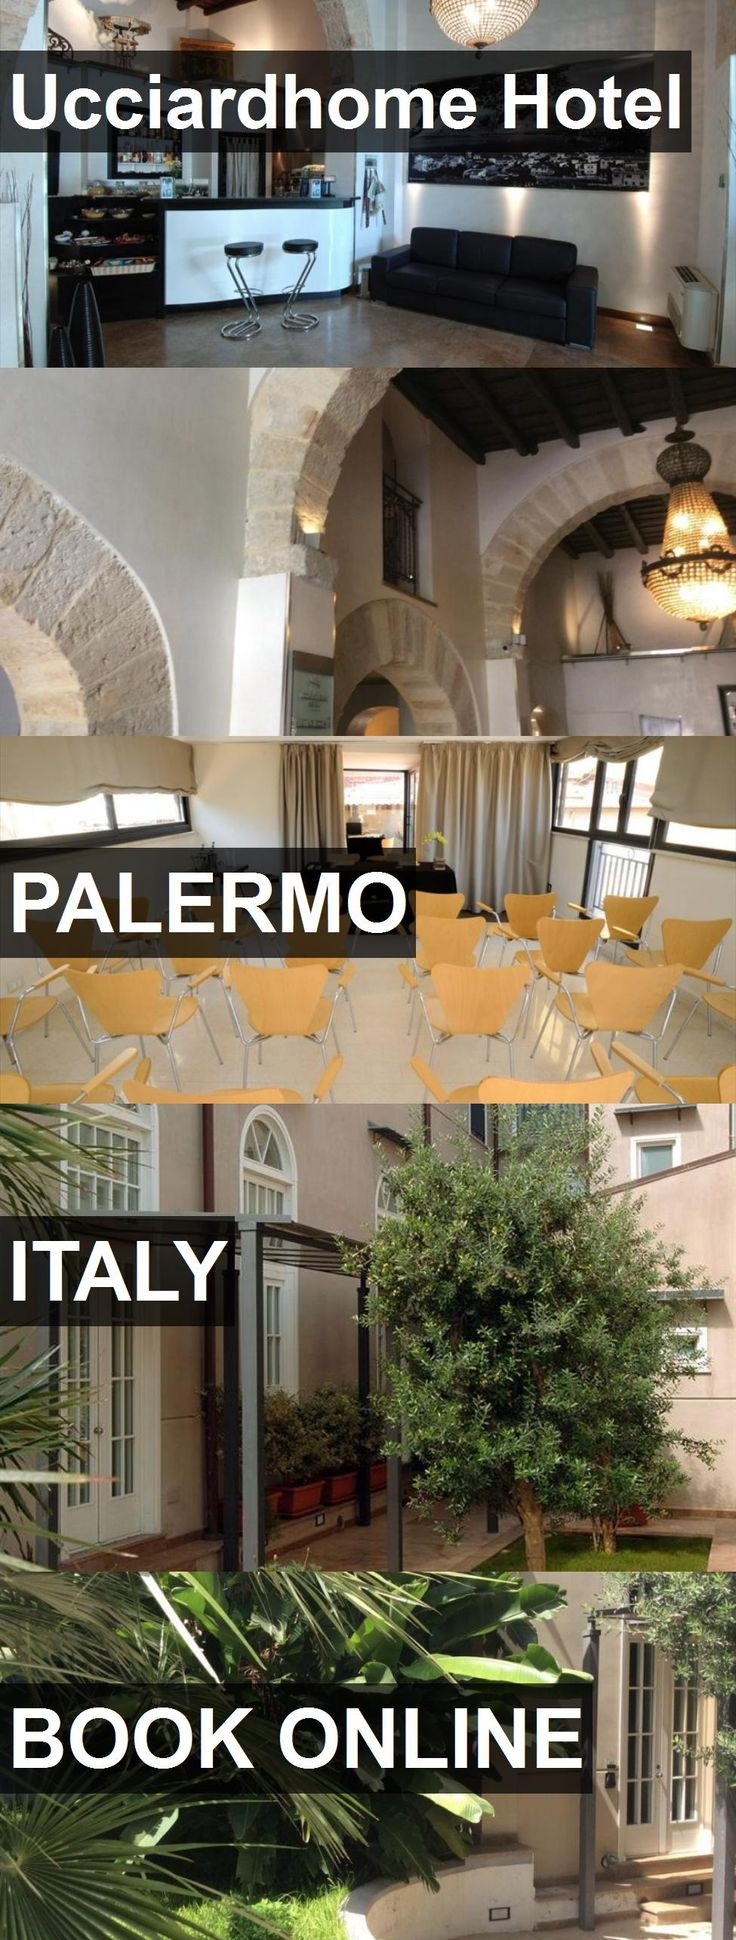 Hotel Ucciardhome Hotel in Palermo, Italy. For more information, photos, reviews and best prices please follow the link. #Italy #Palermo #UcciardhomeHotel #hotel #travel #vacation